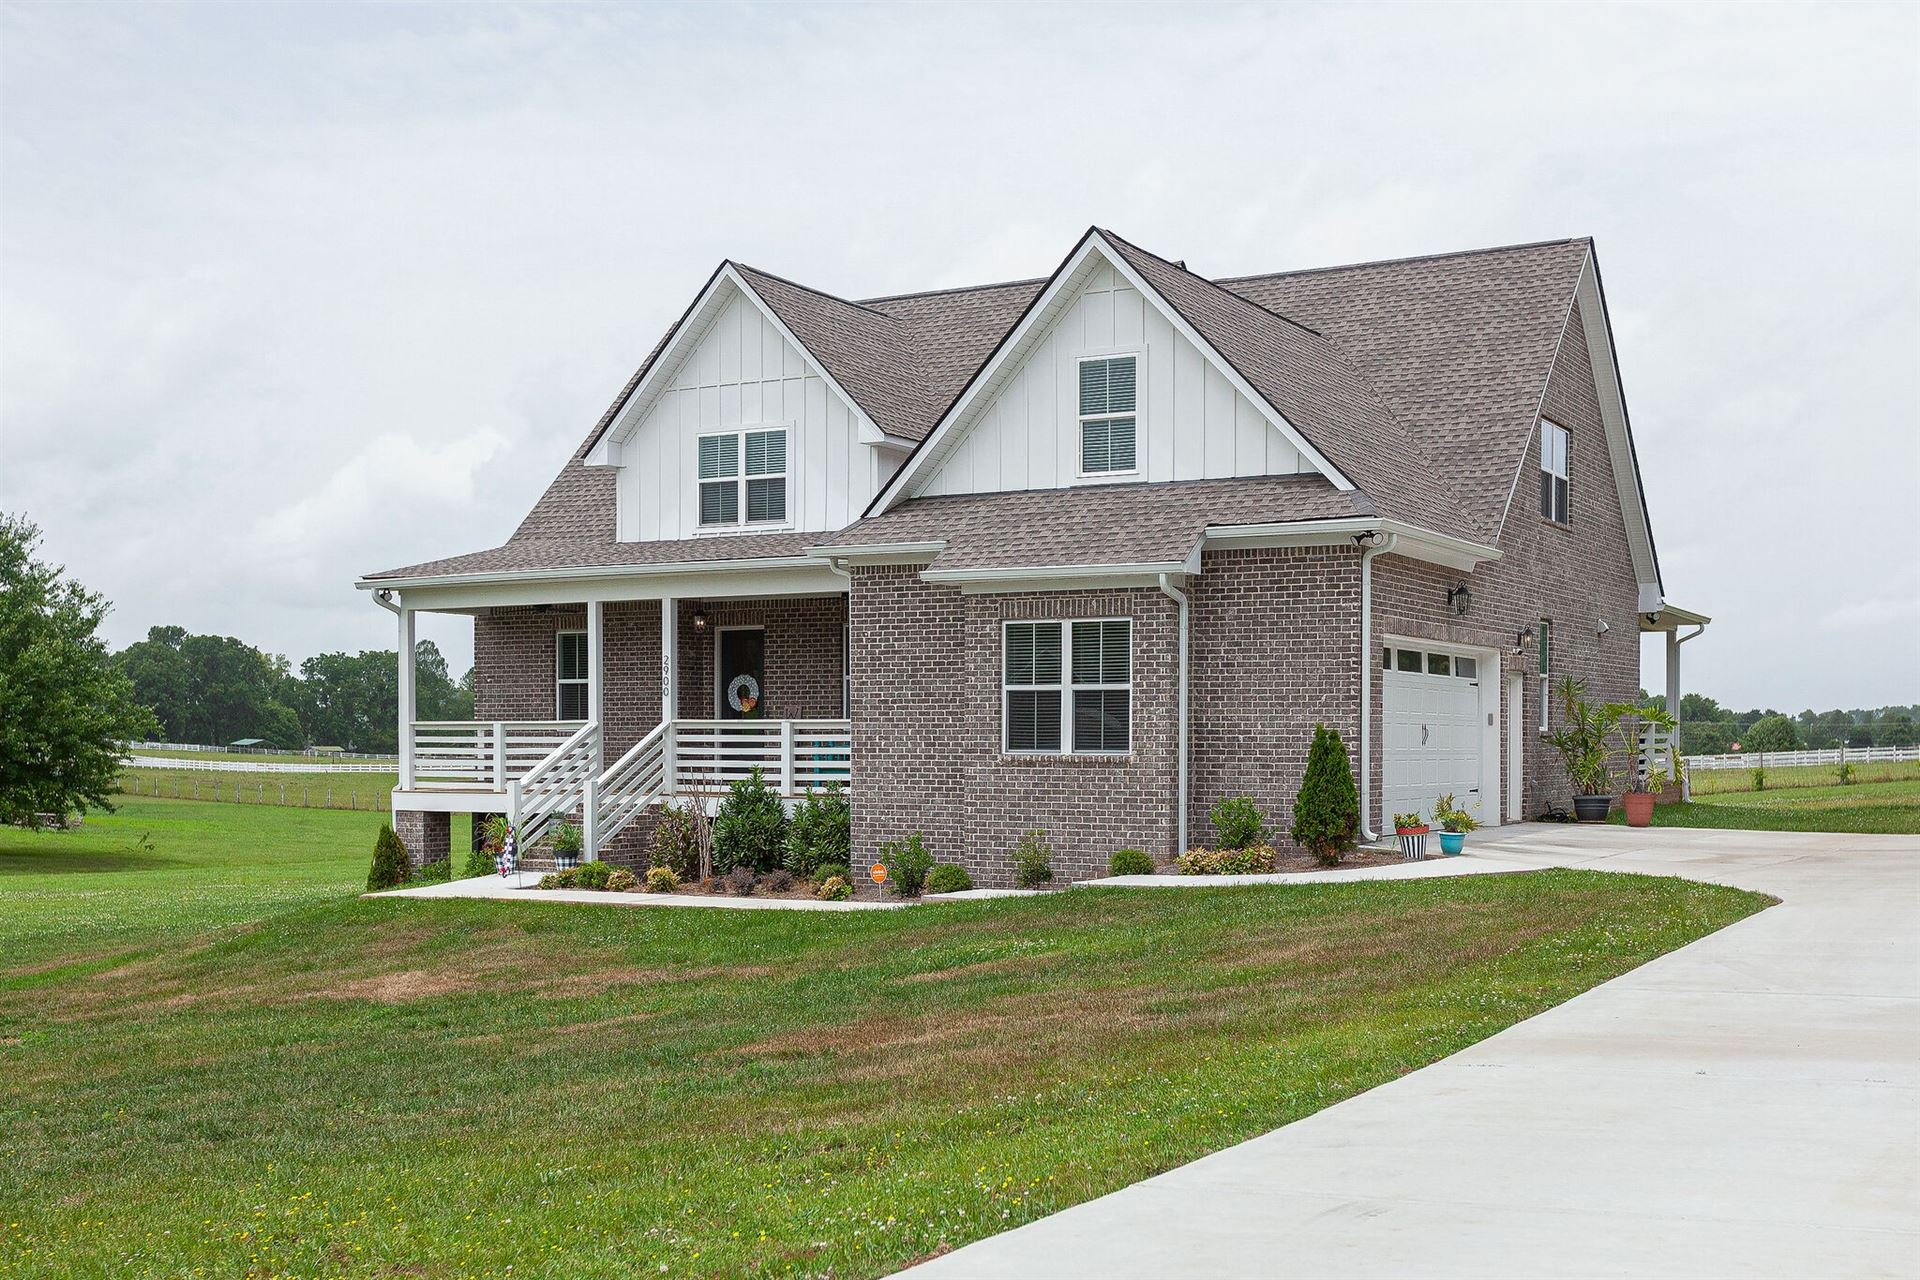 2900 Chasepointe Pl, Columbia, TN 38401 - MLS#: 2164940